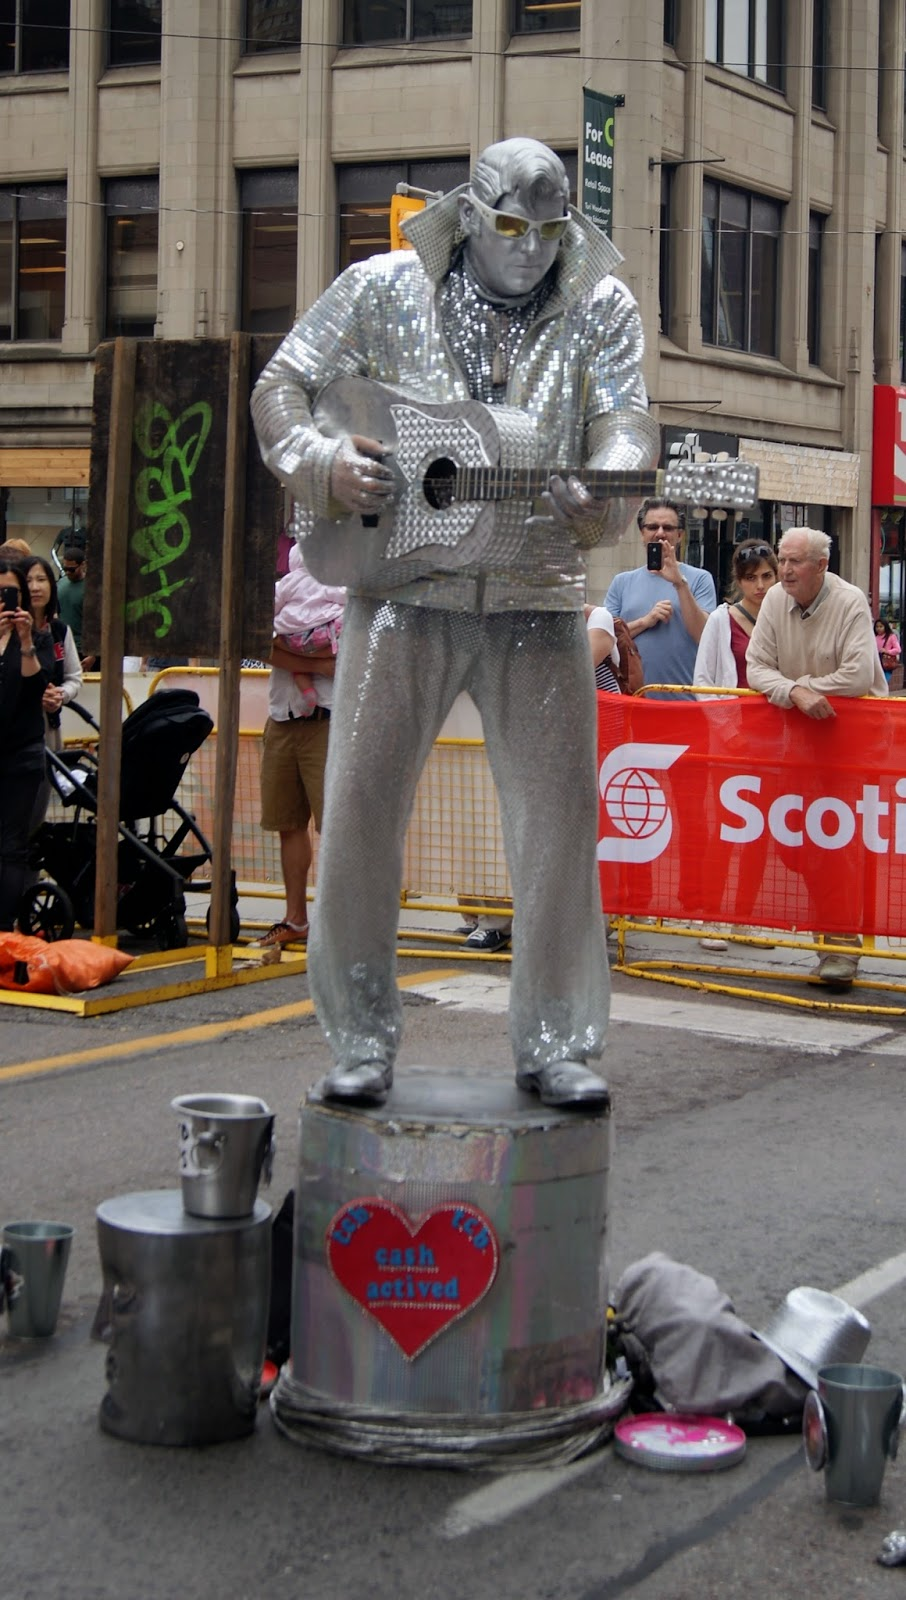 Scotiabank BuskerFest downtown Toronto 2014, Street Performers, performances, buskers, art, culture, festival, melanie.ps, the purple scarf, ontario, canada, eplilepsy, charity, entertainment, world,hat, fire, acrobats, music,